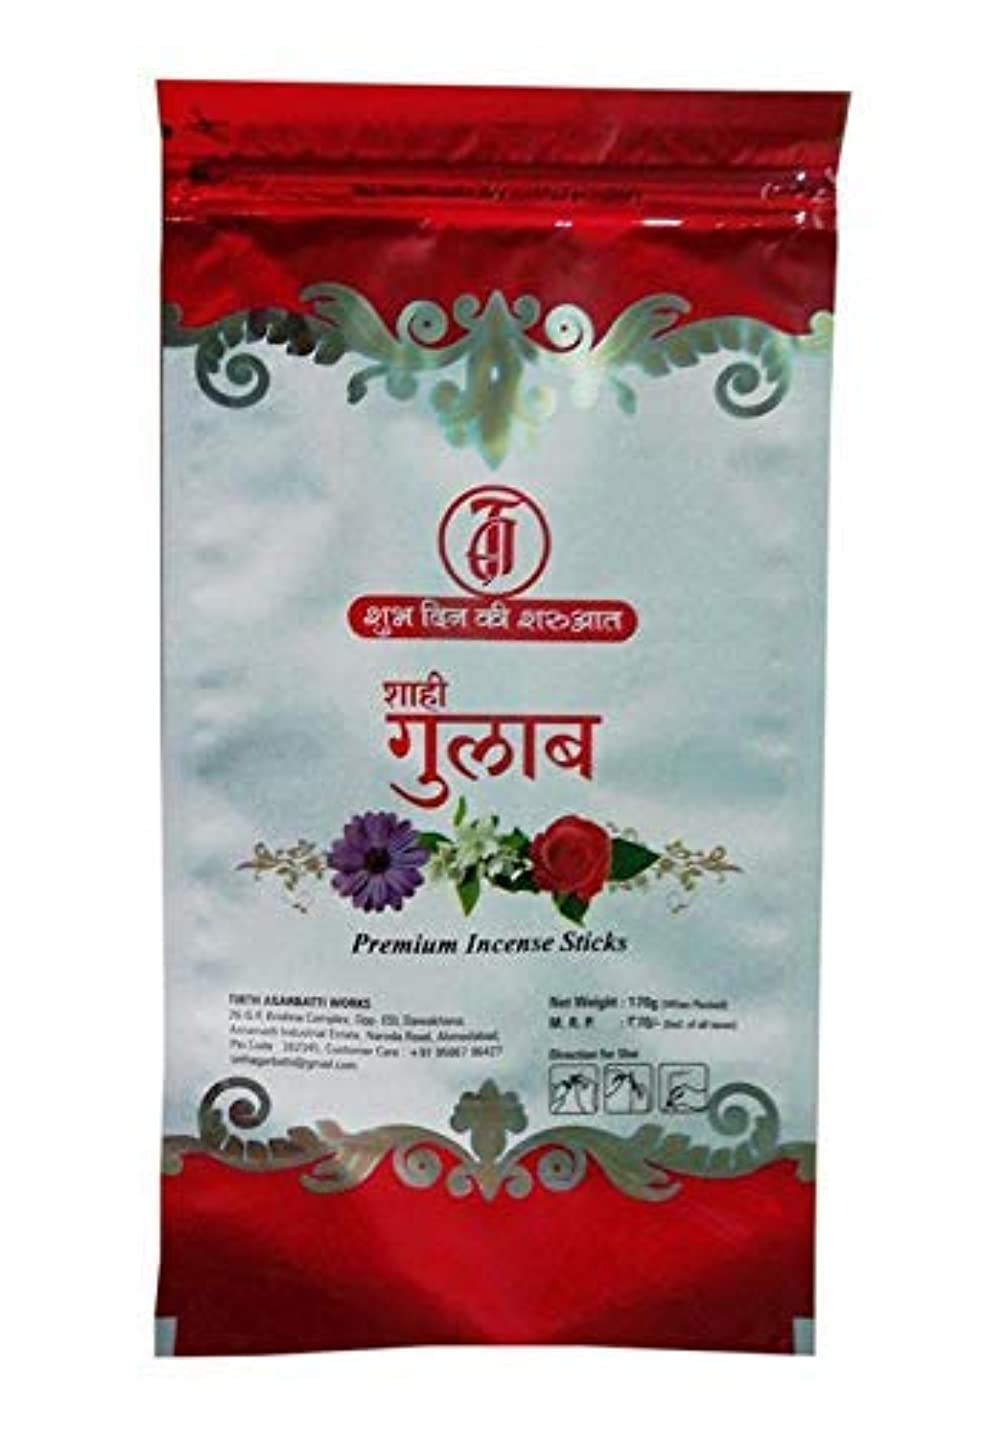 考える懐疑論退屈TIRTH Sahi Gulab Premium Incense Stick/Agarbatti (170 GM Pack) Pack of 2